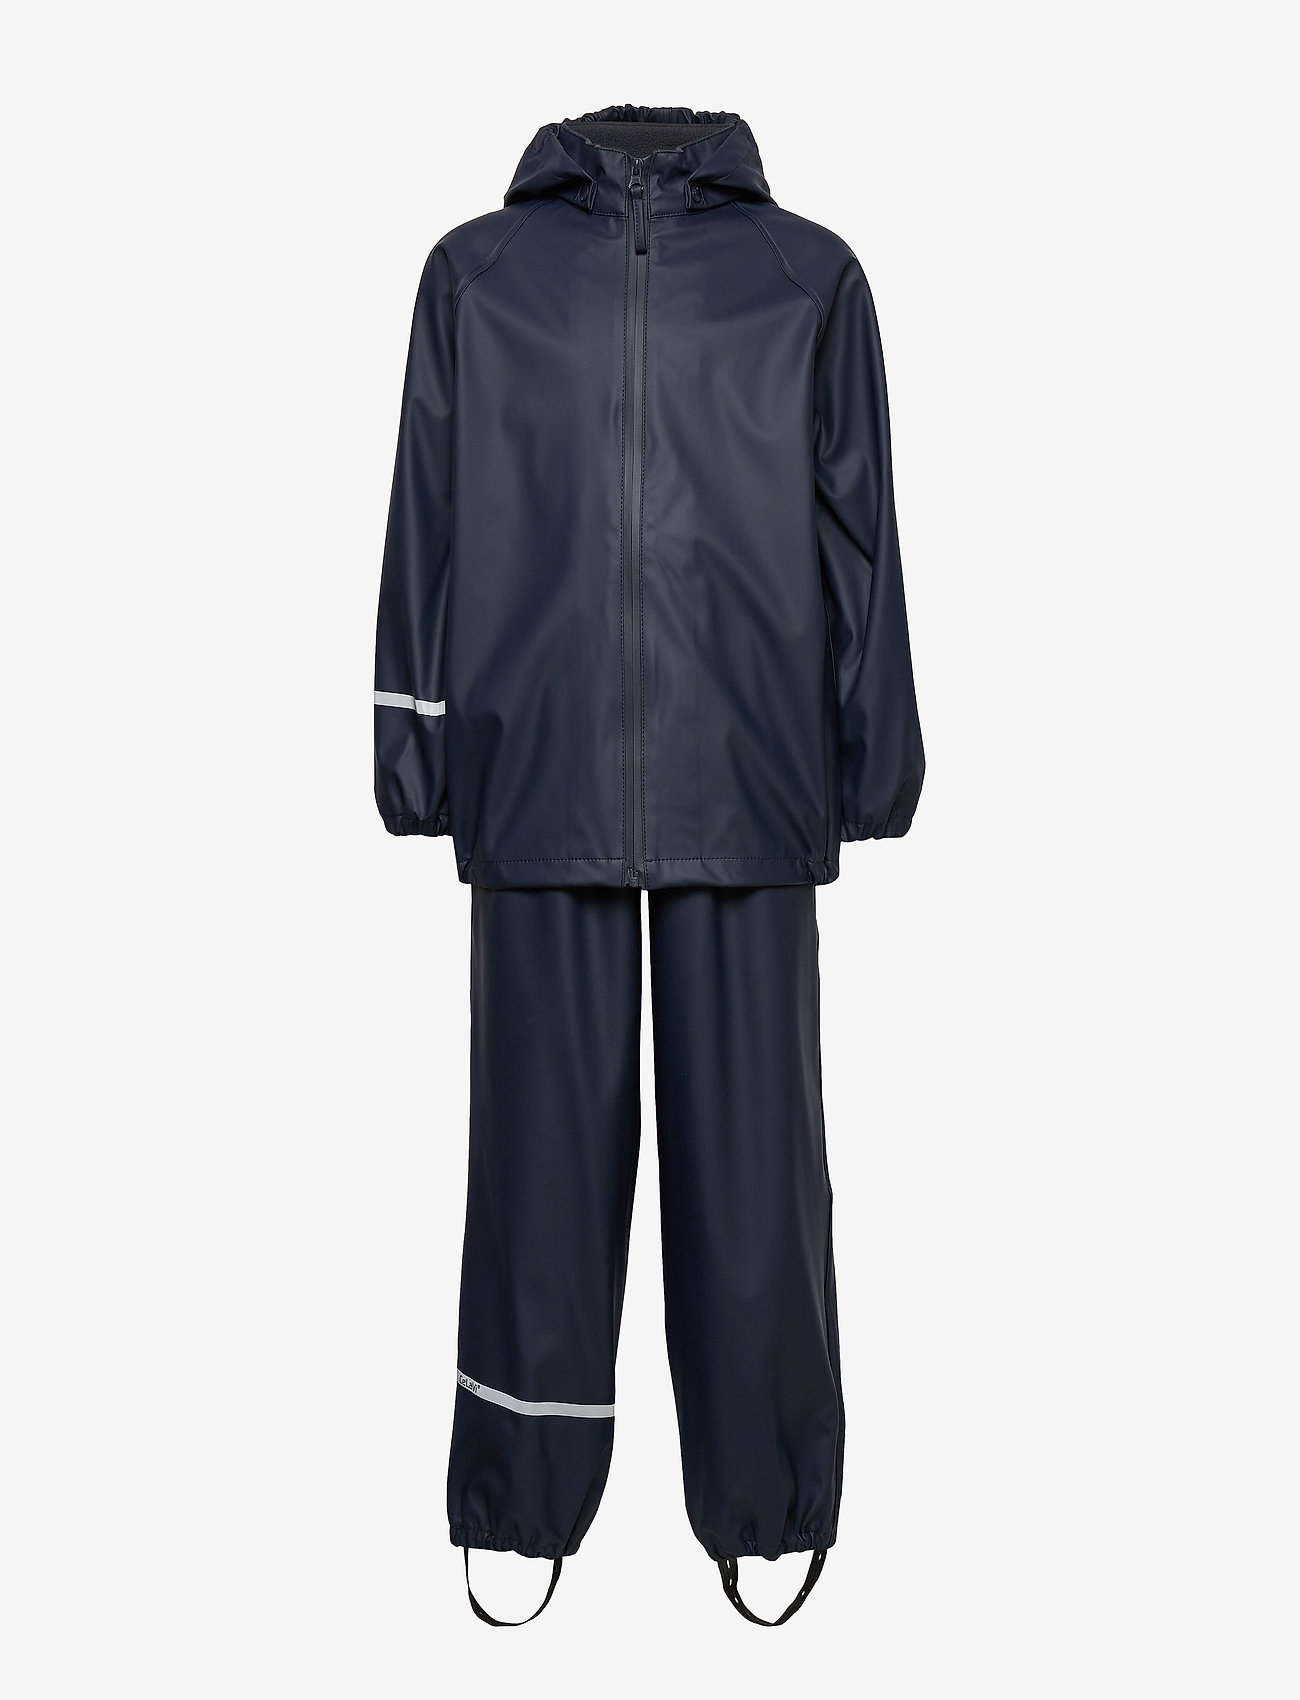 CeLaVi - Basic rainwear set -Recycle PU - ensembles - dark navy - 0